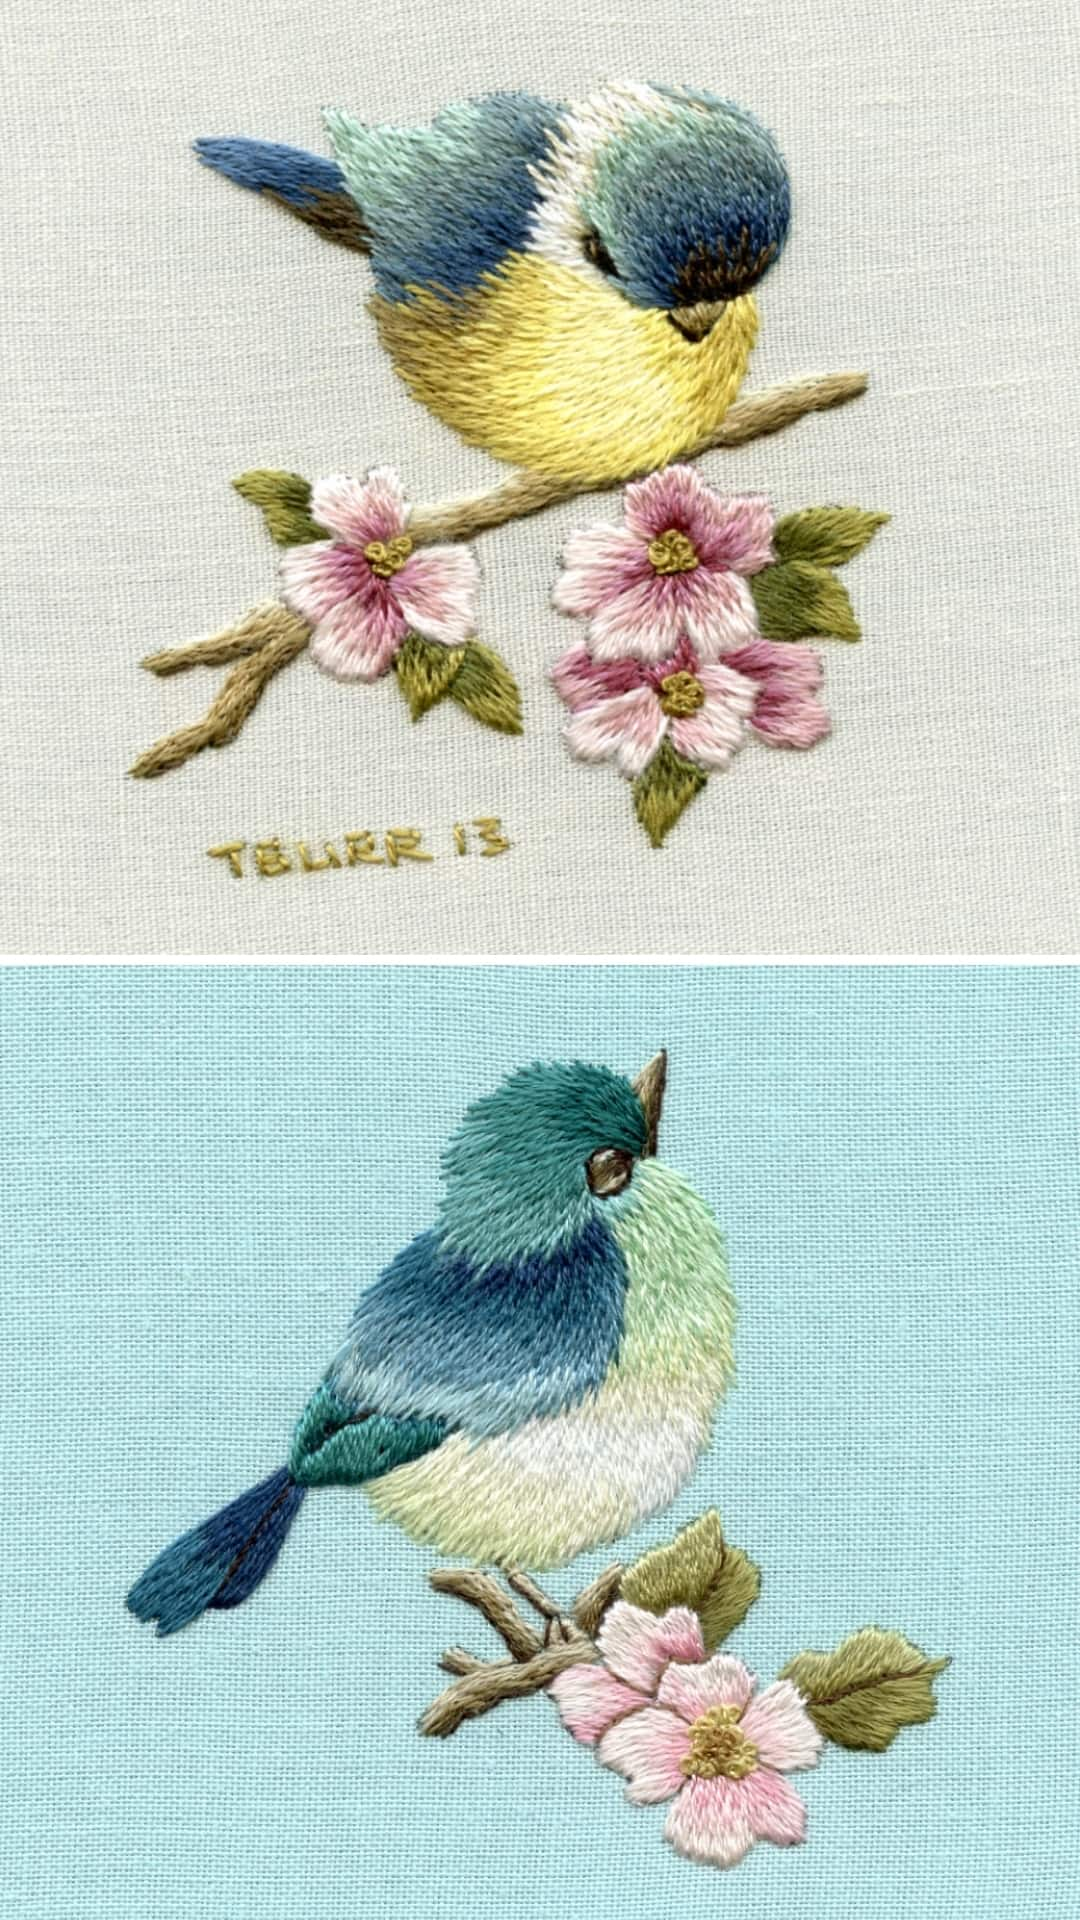 love these blue bird and blue tit embroidery patterns by Trish Burr - just one of the beautiful crewel embroidery ideas I've shared with all the links you need to buy the patterns and to get your free PDF download patterns too! #crewel #embroidery #pattern #bird